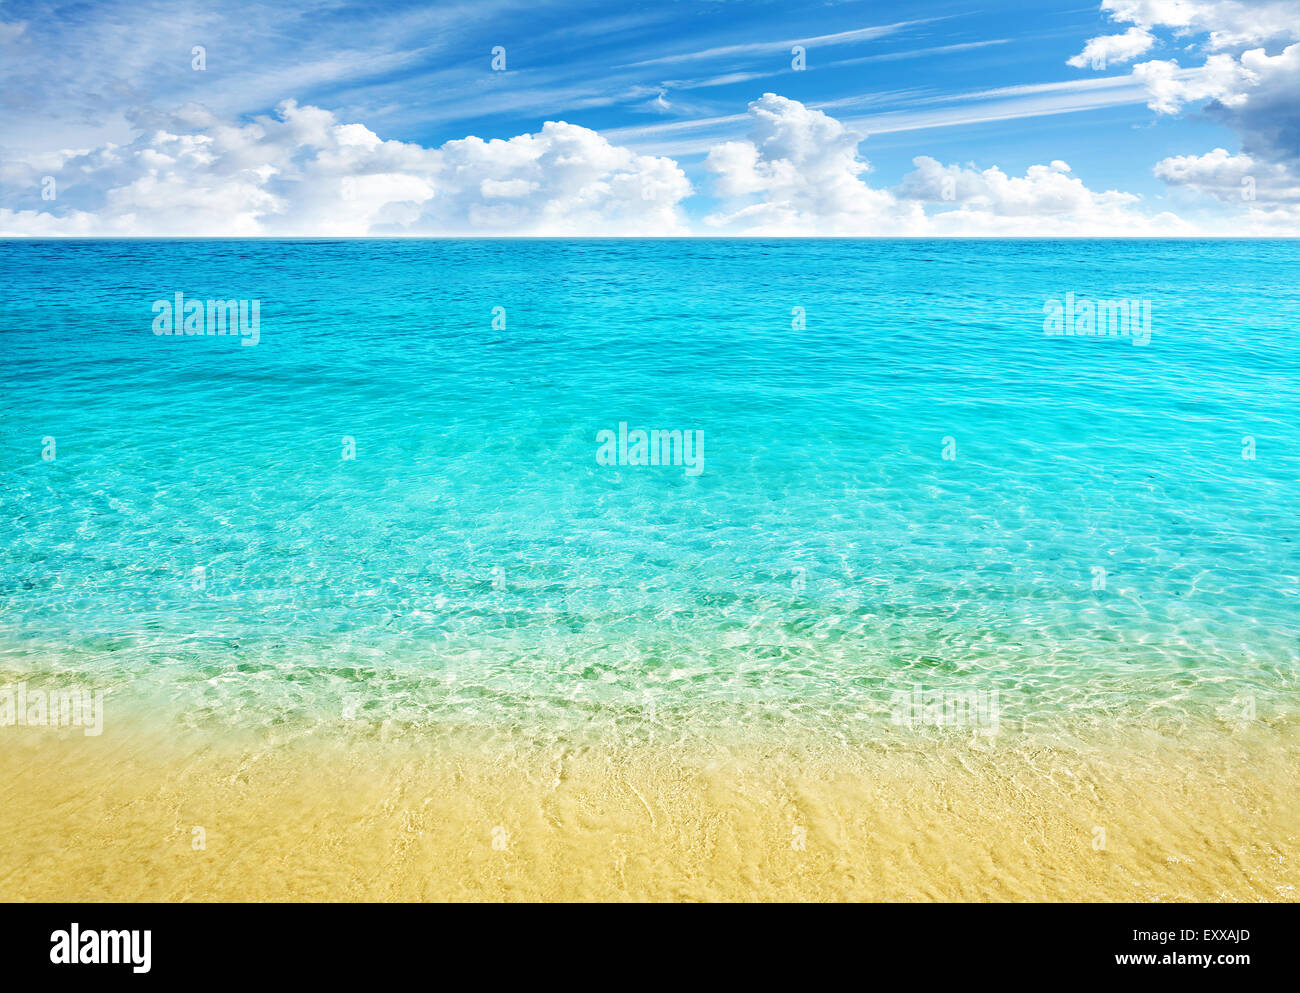 Summer beach background, clear water and blue cloudy sky. - Stock Image